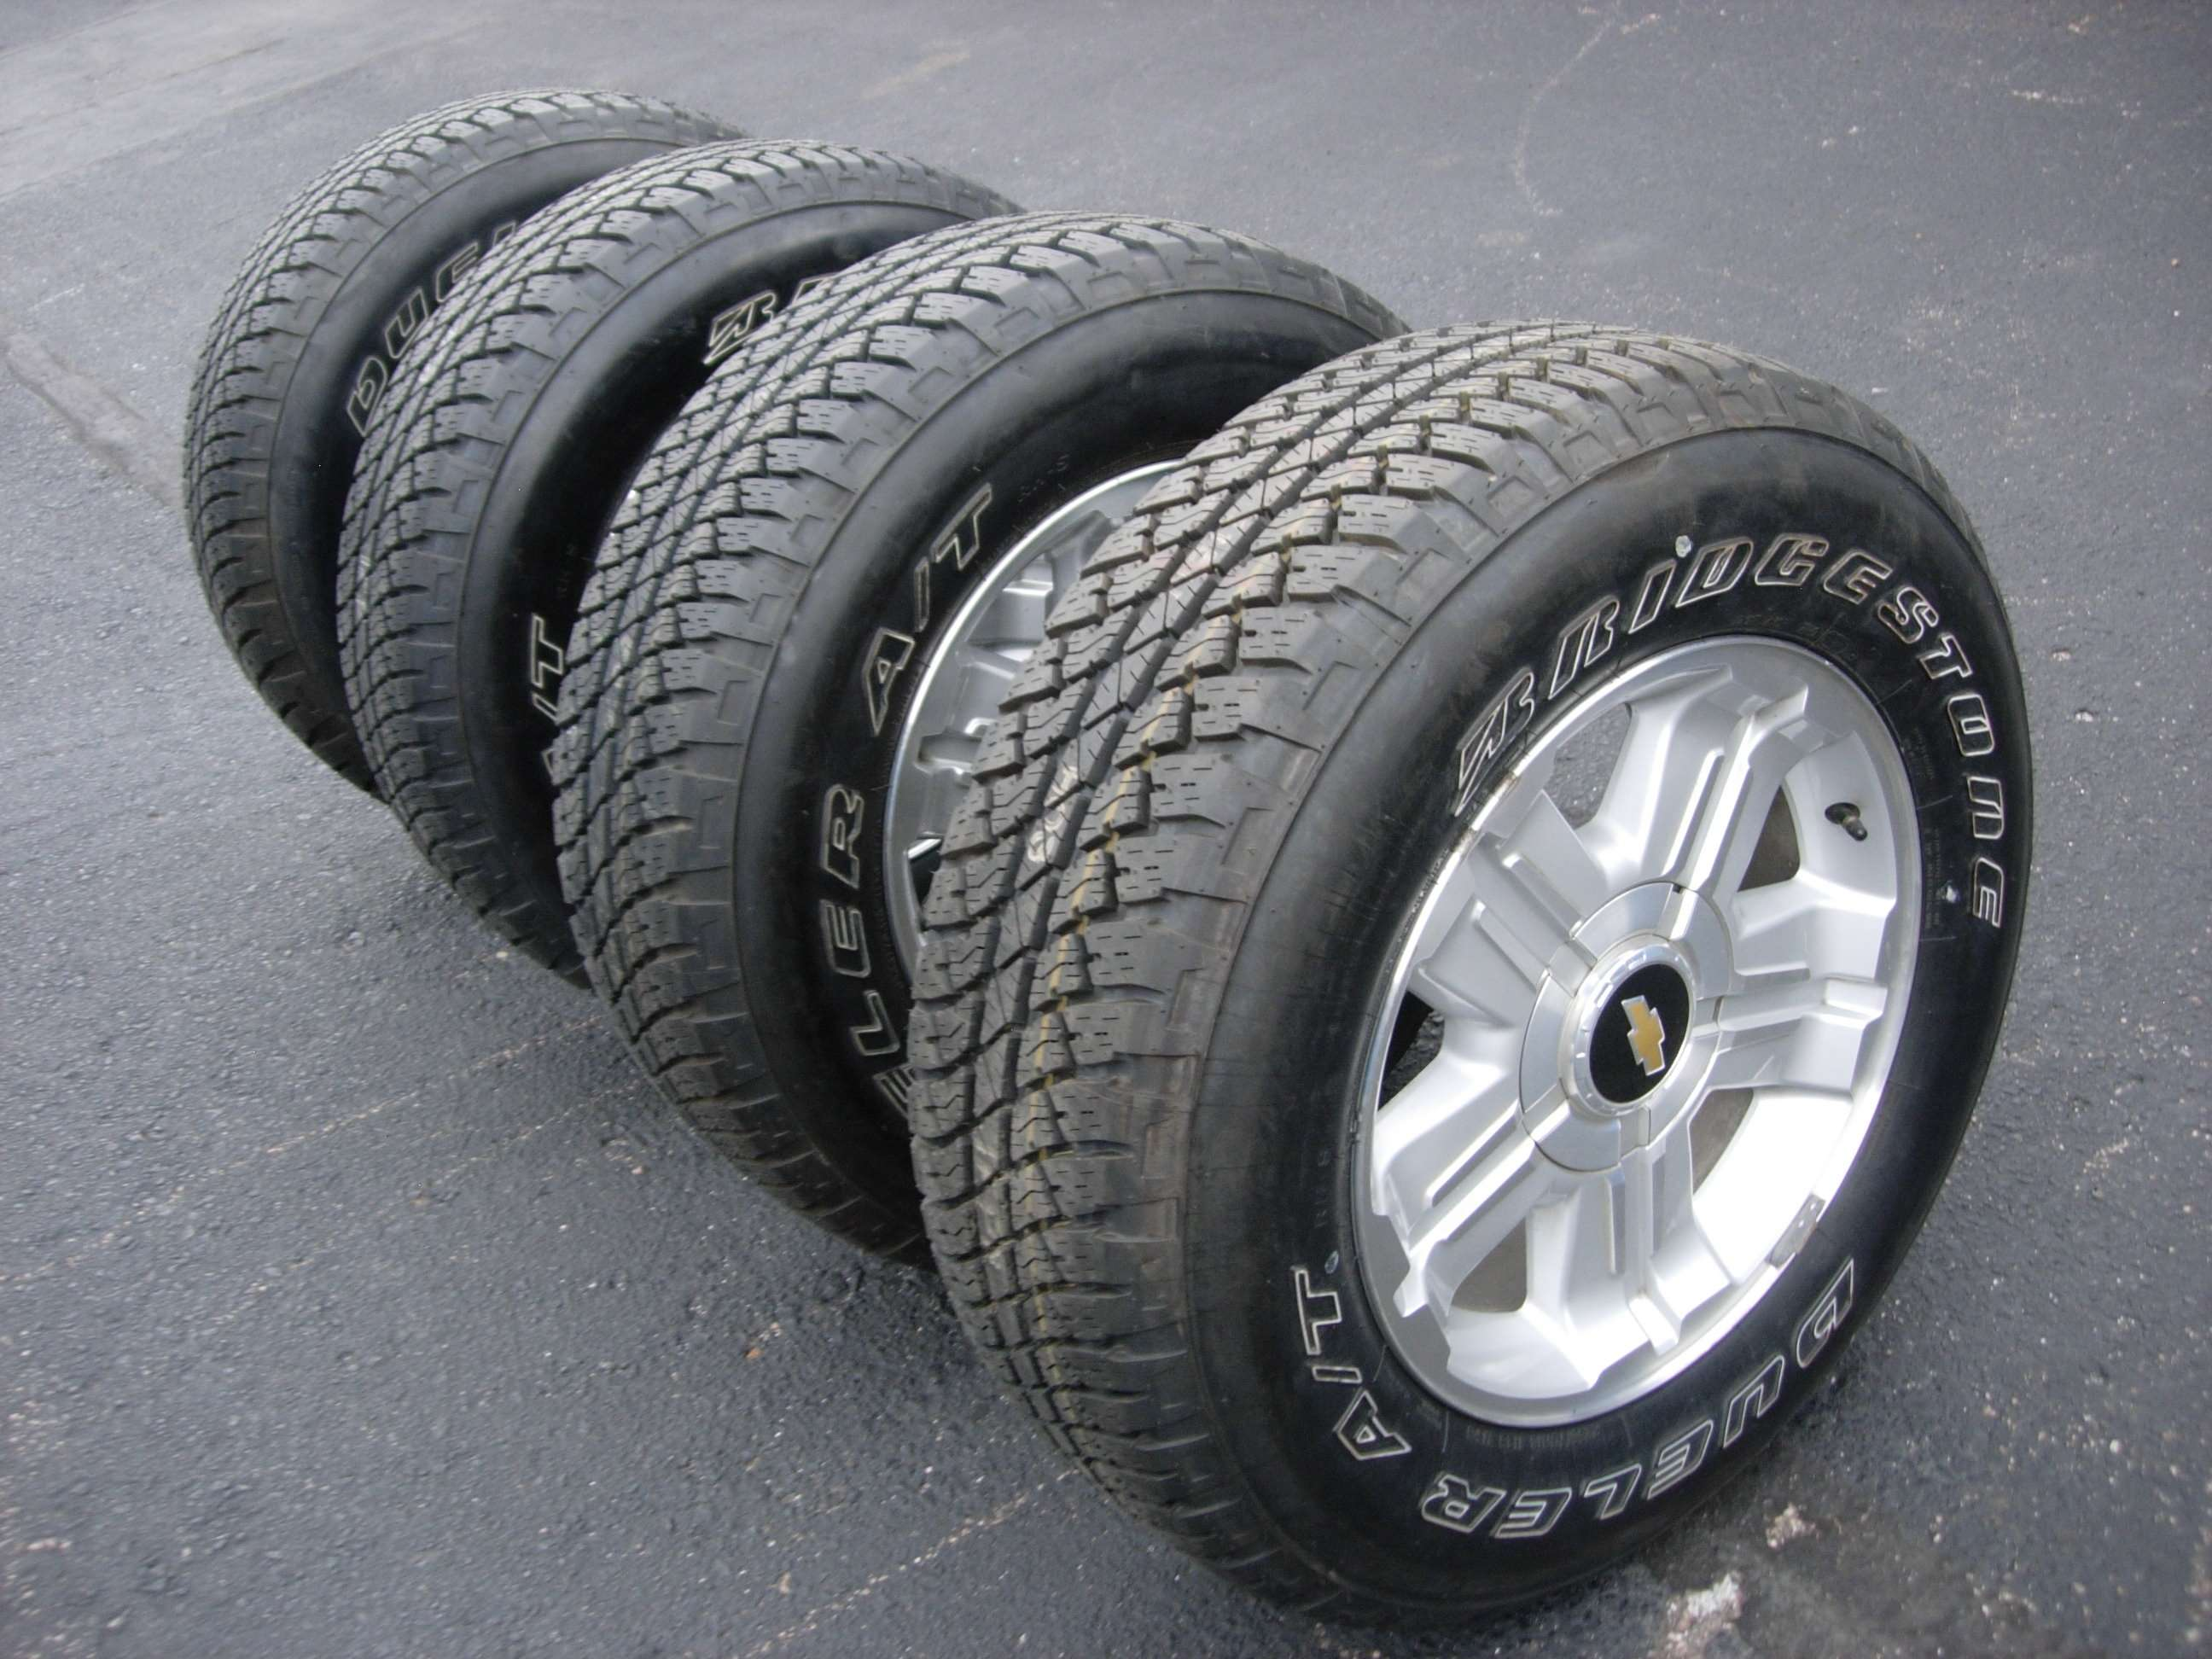 Used Rims And Tires Near Me >> Used Tires And Rims In Colorado Springs